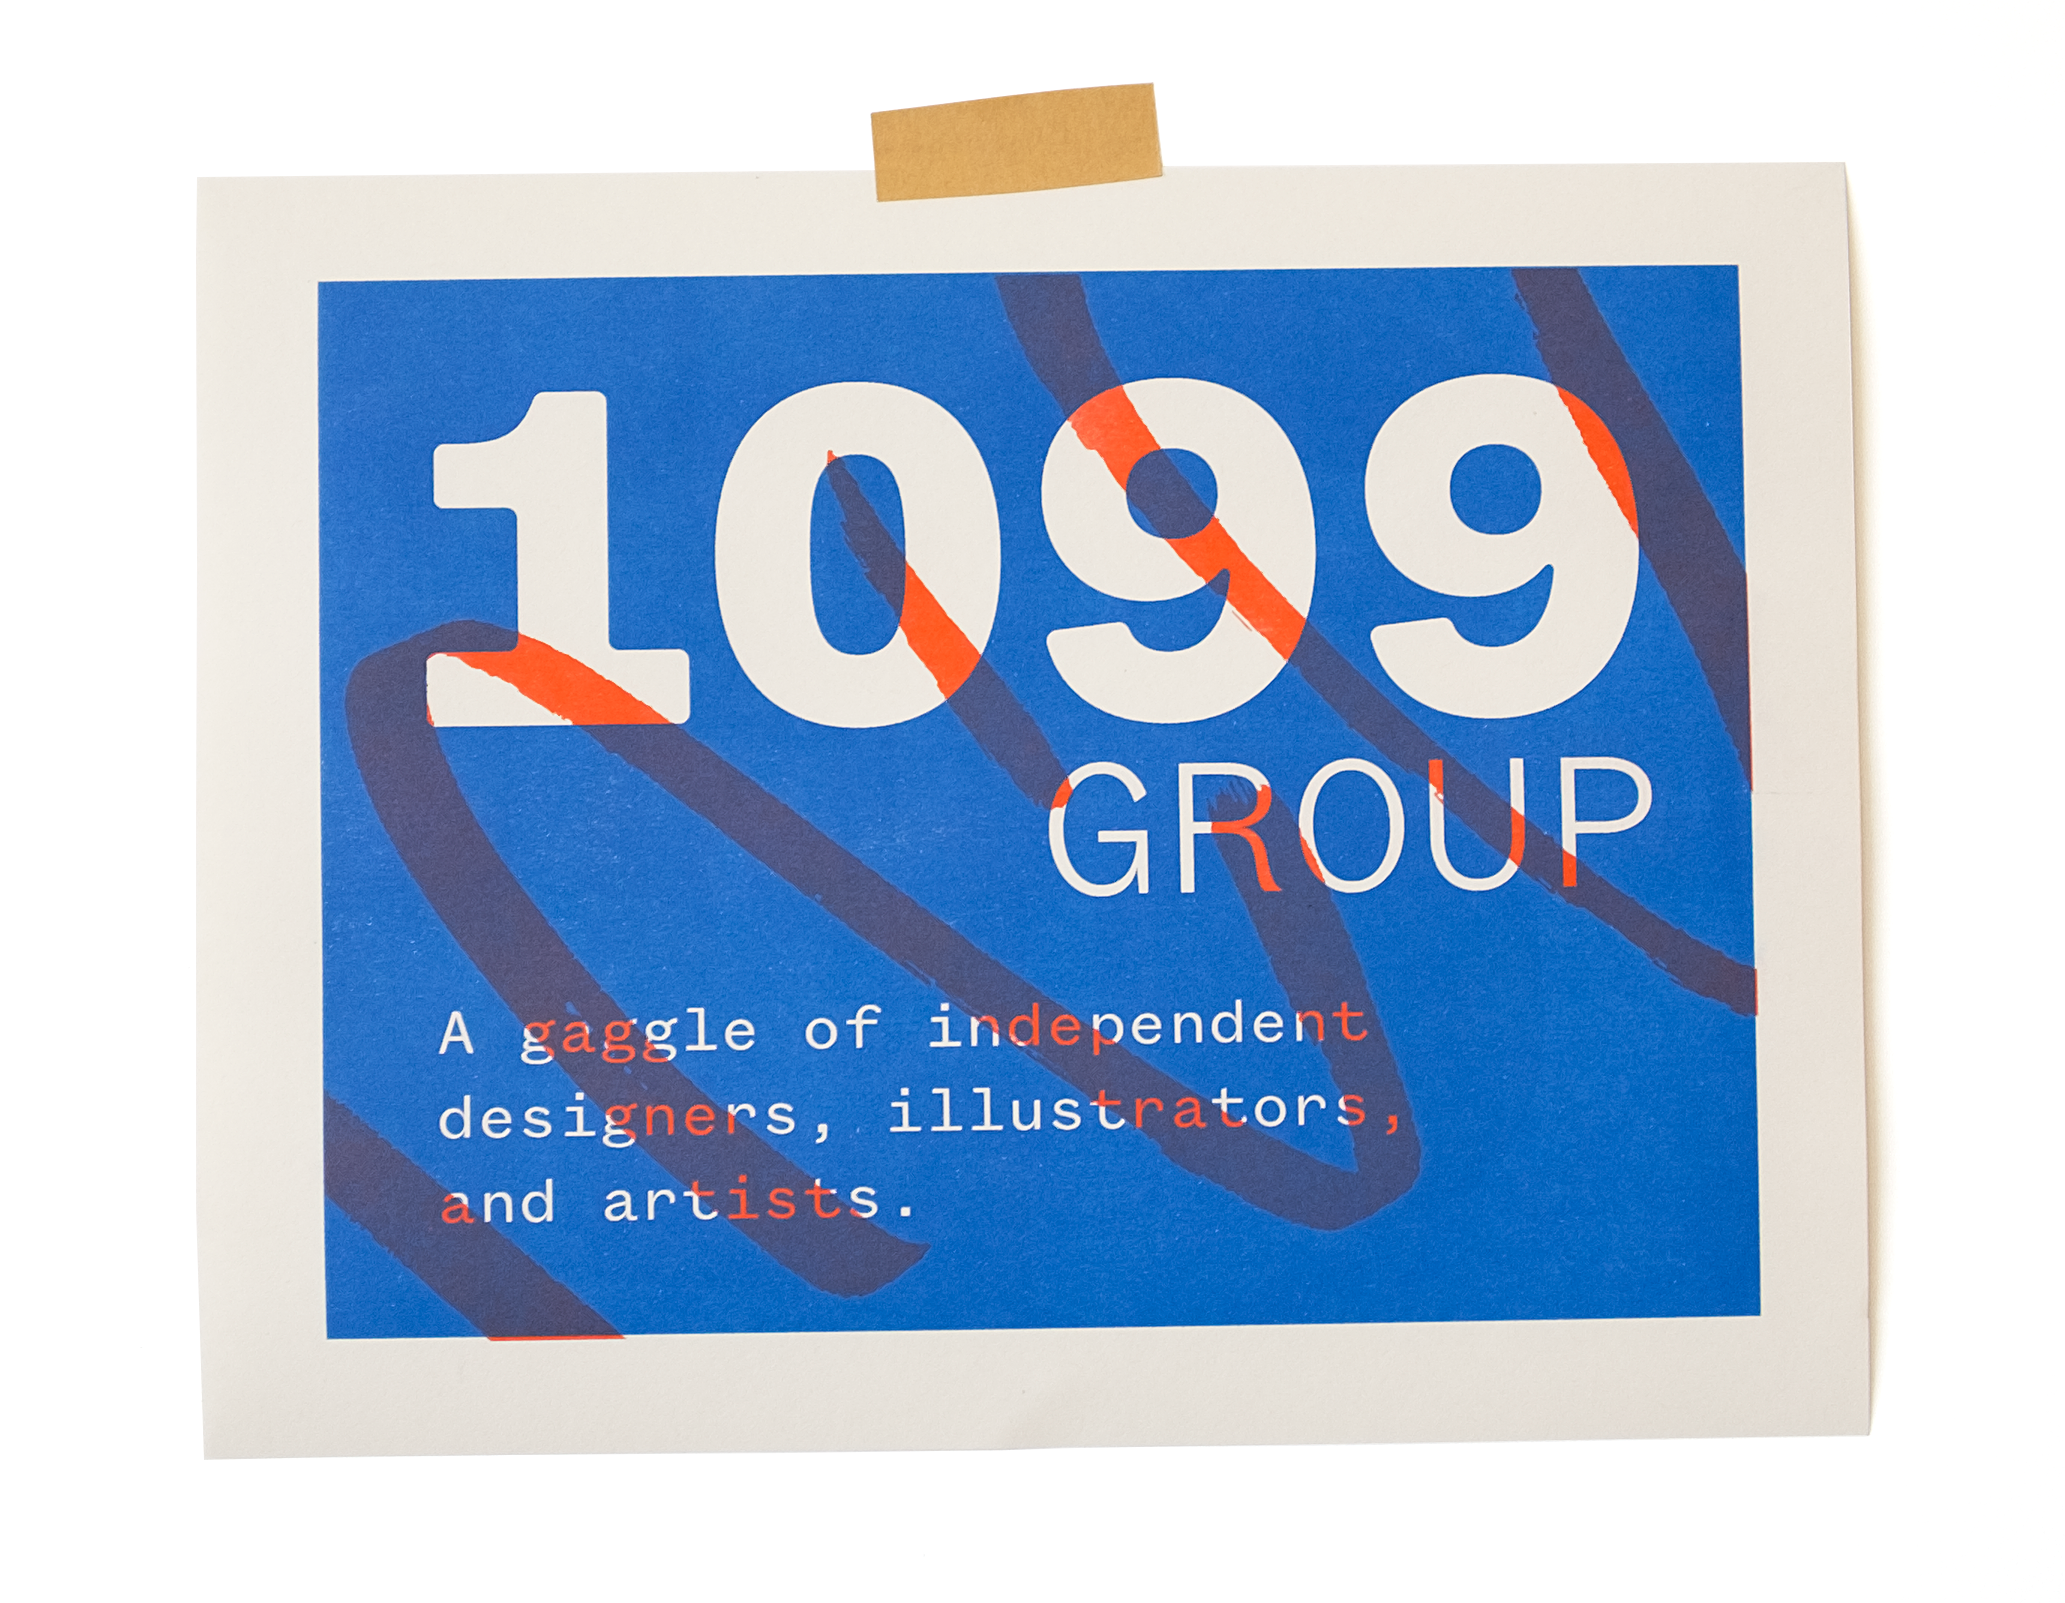 1099 Group